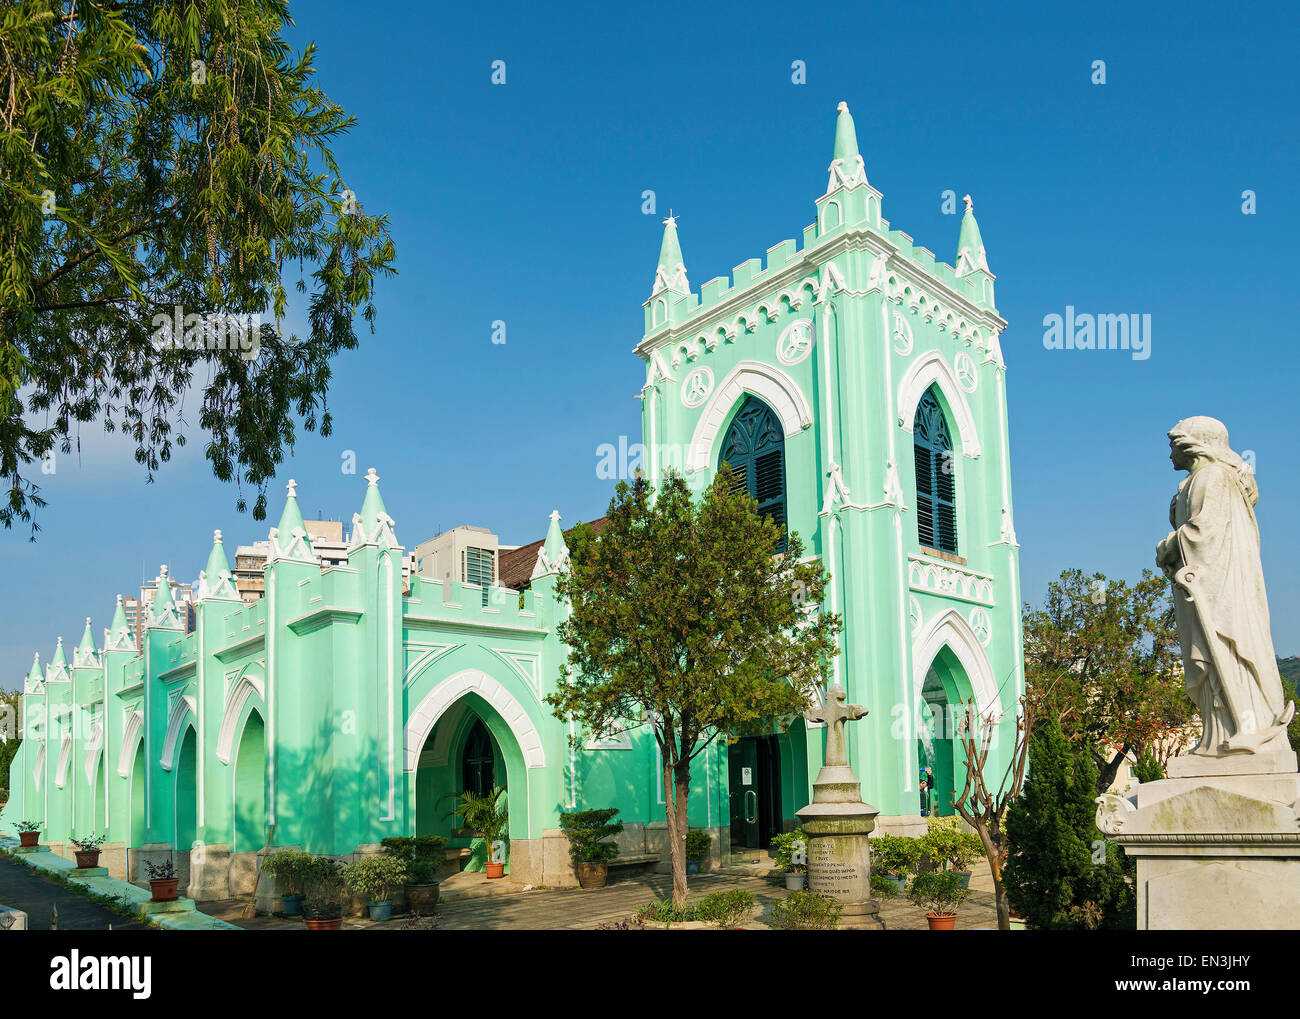 St michael portuguese christian cemetery church in macau macao china - Stock Image